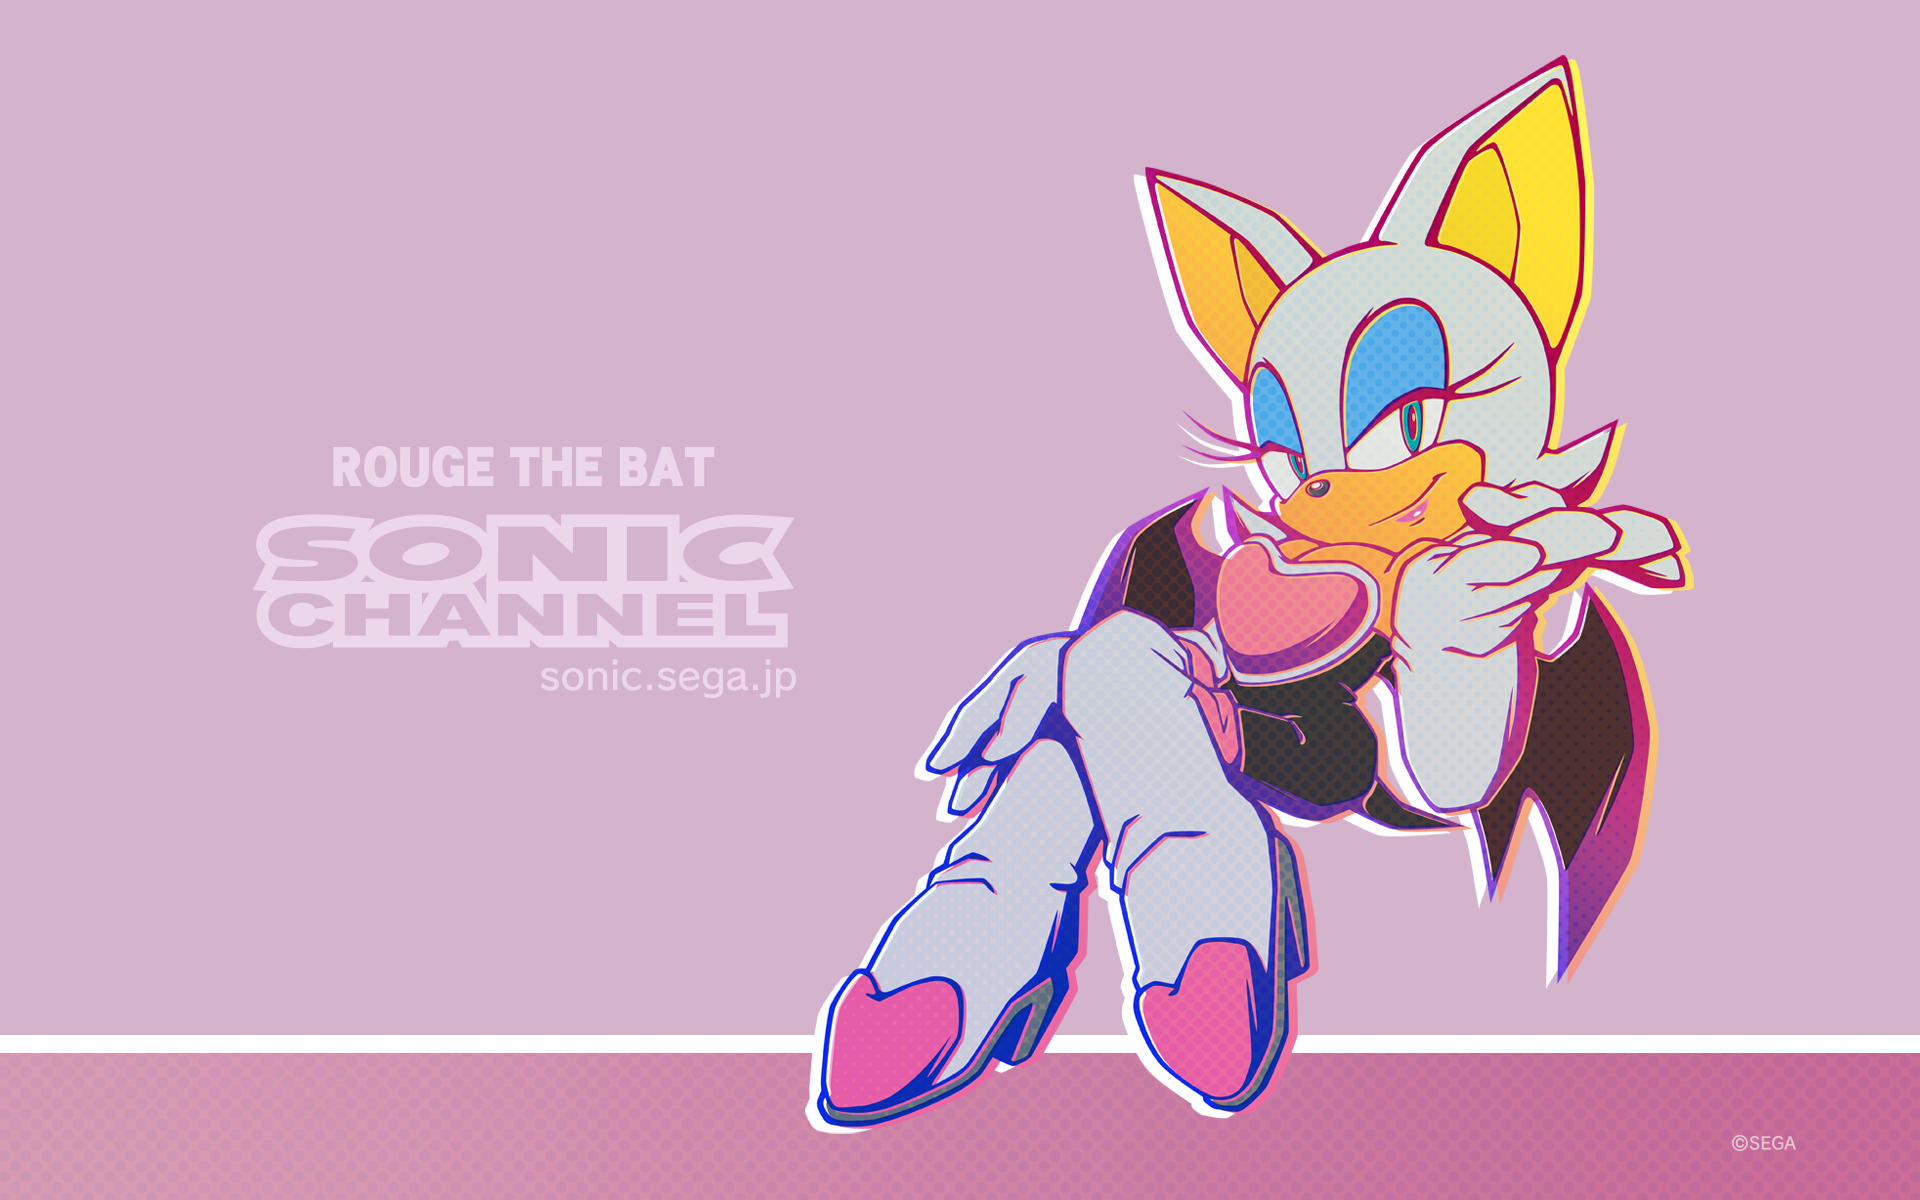 http://sonic.sega.jp/SonicChannel/enjoy/image/wallpaper_190_rouge_14_pc.png